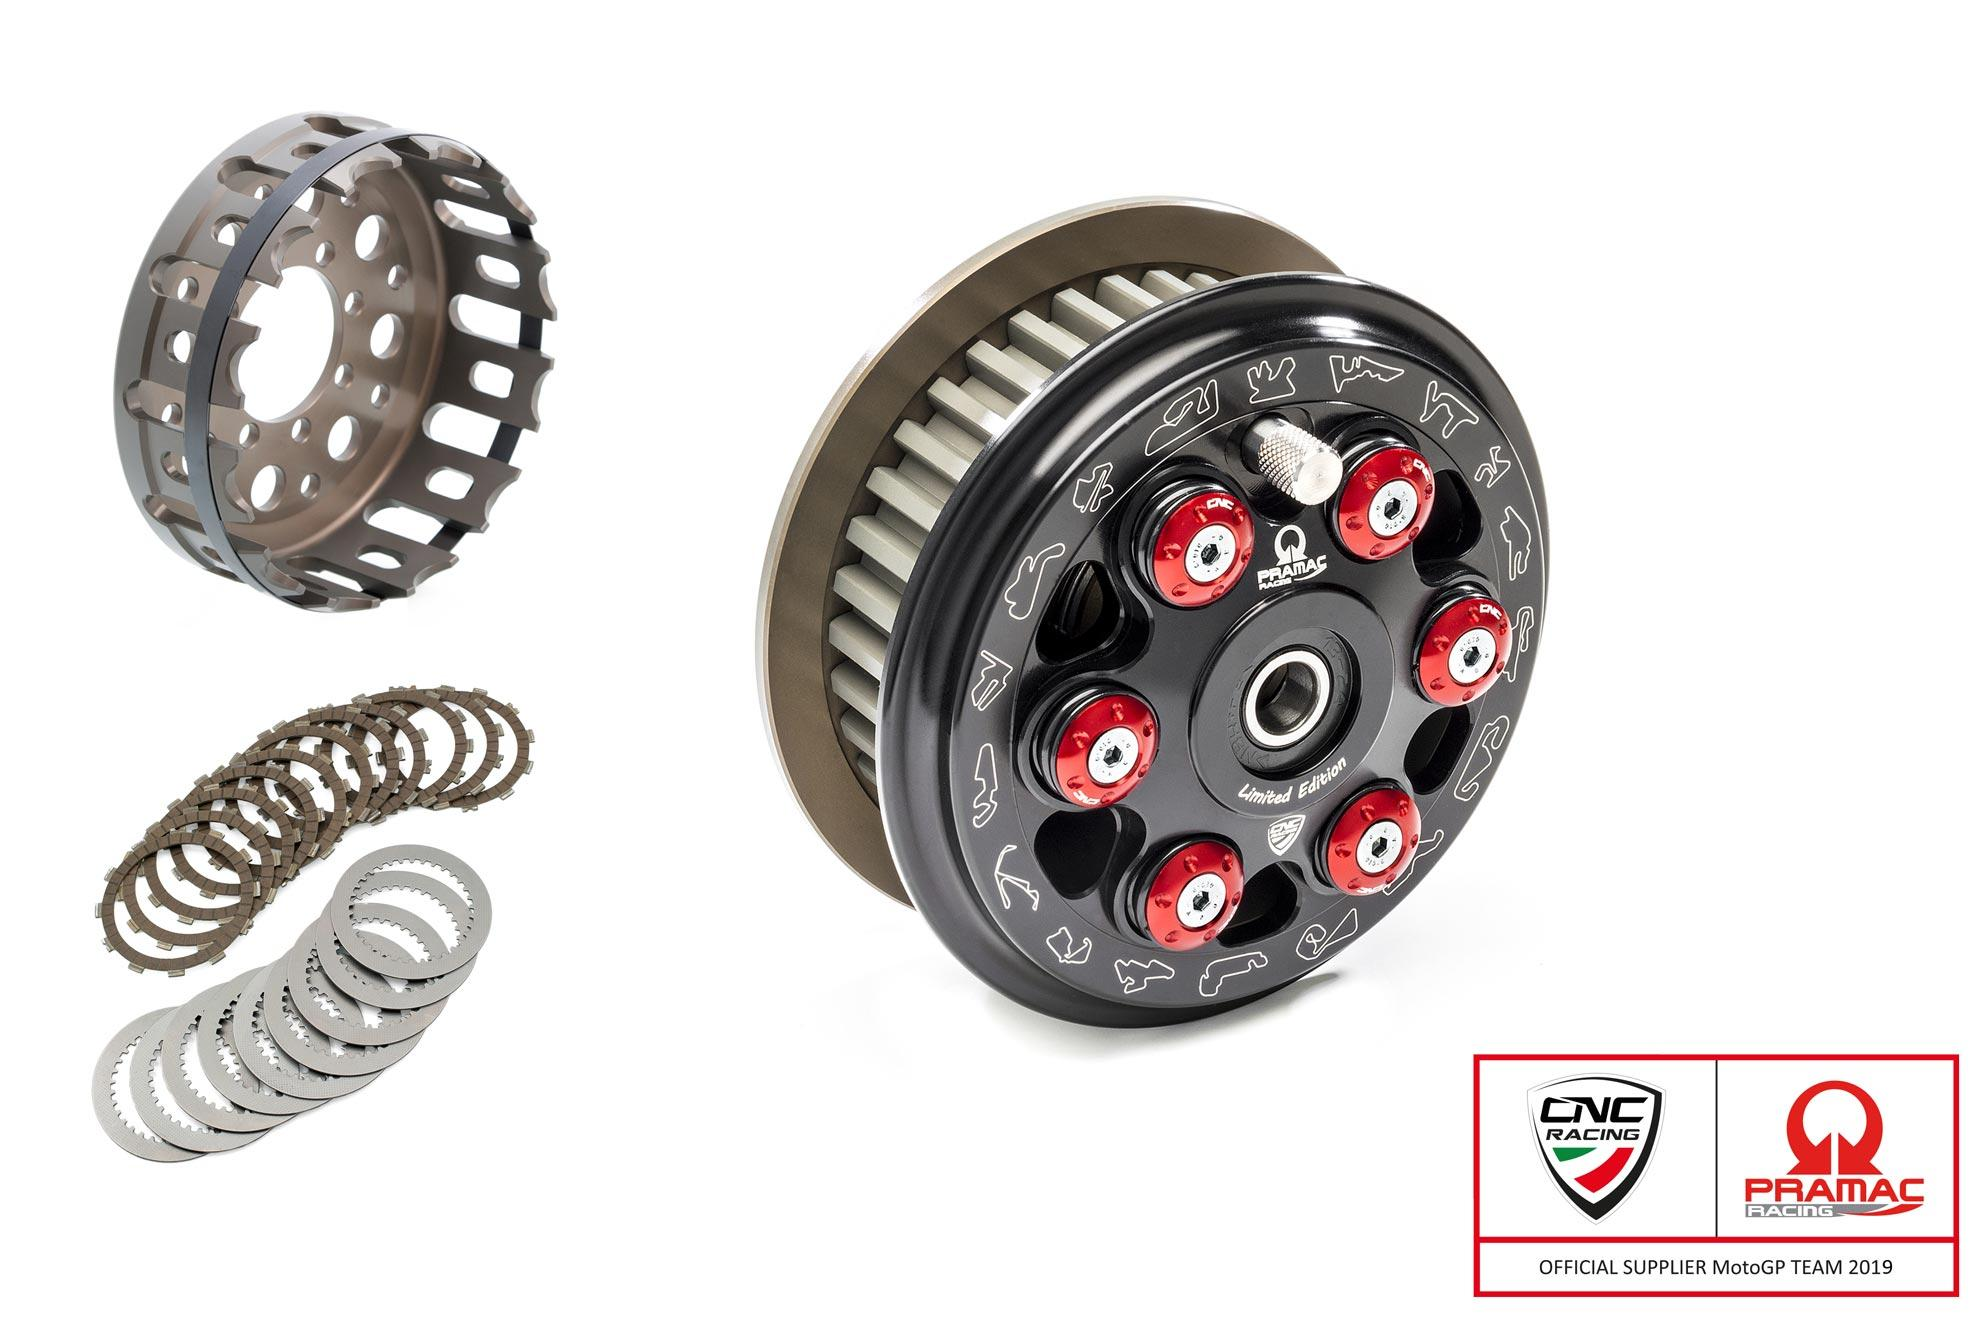 CNC Racing Pramac Slipper Clutch Kit - Ducati, Slipper Clutch, CNC Racing - Averys Motorcycles